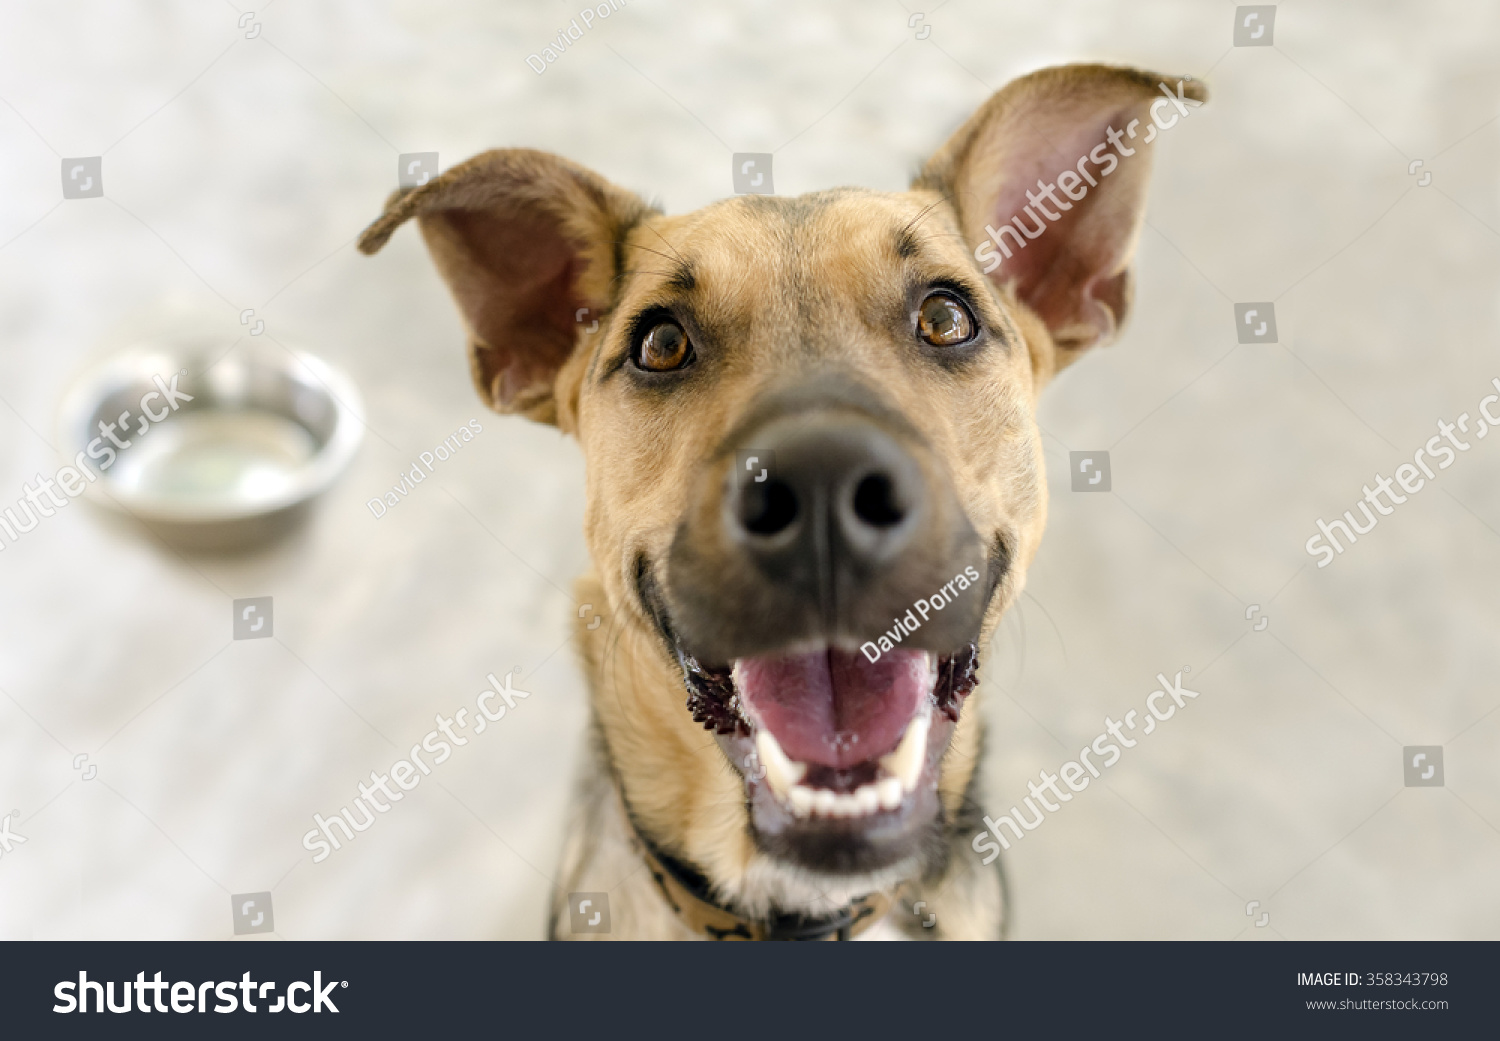 Image Gallery excited dog